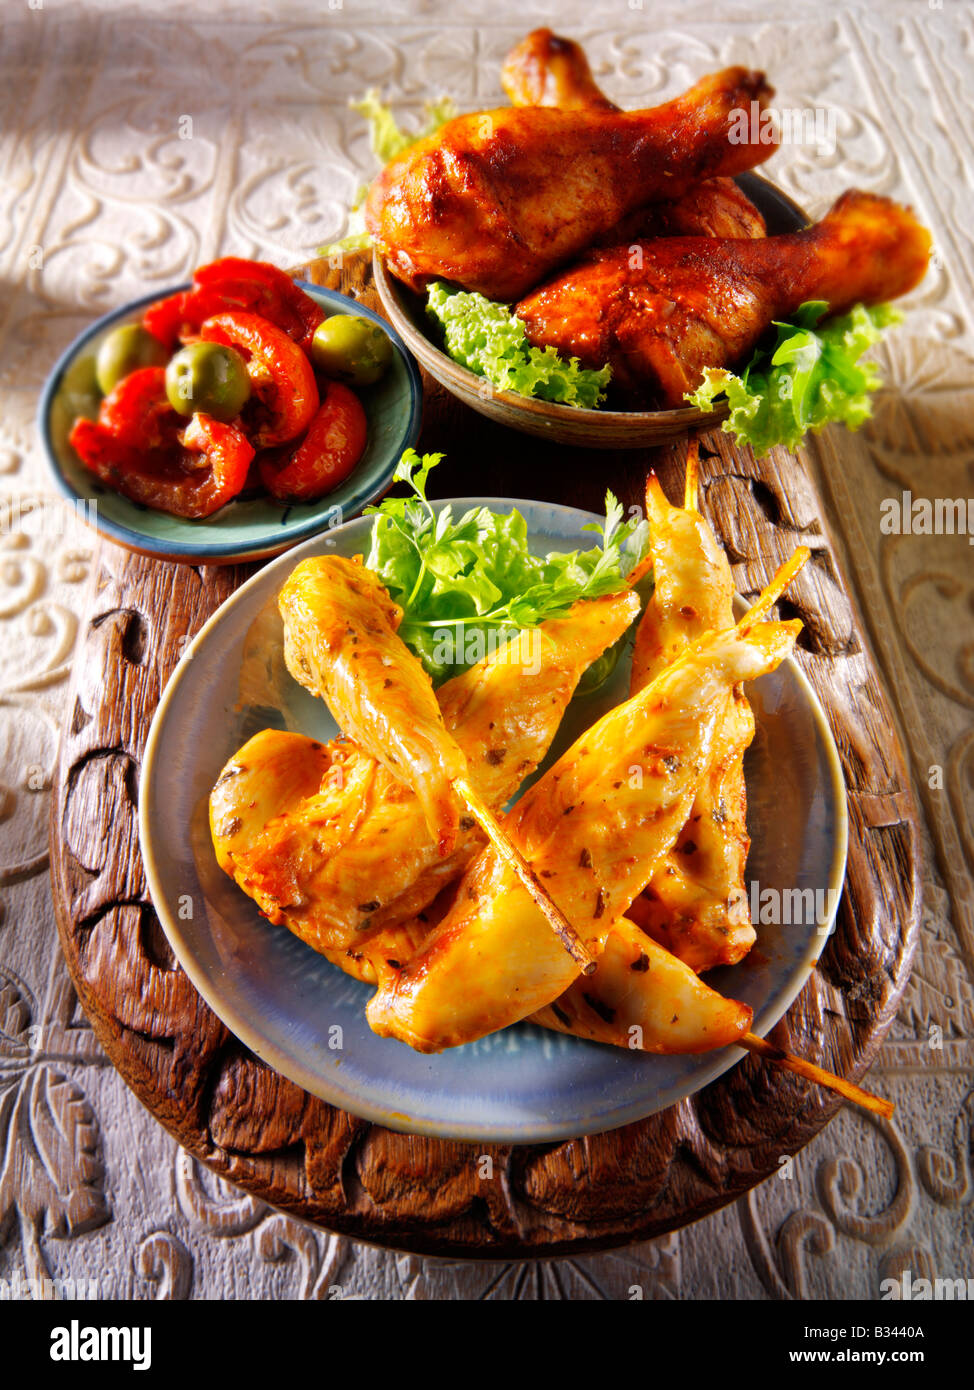 party food - From Front - Marinated chicken skewers, Marinaded chicken drum sticks and sun blushed tomatoes. - Stock Image